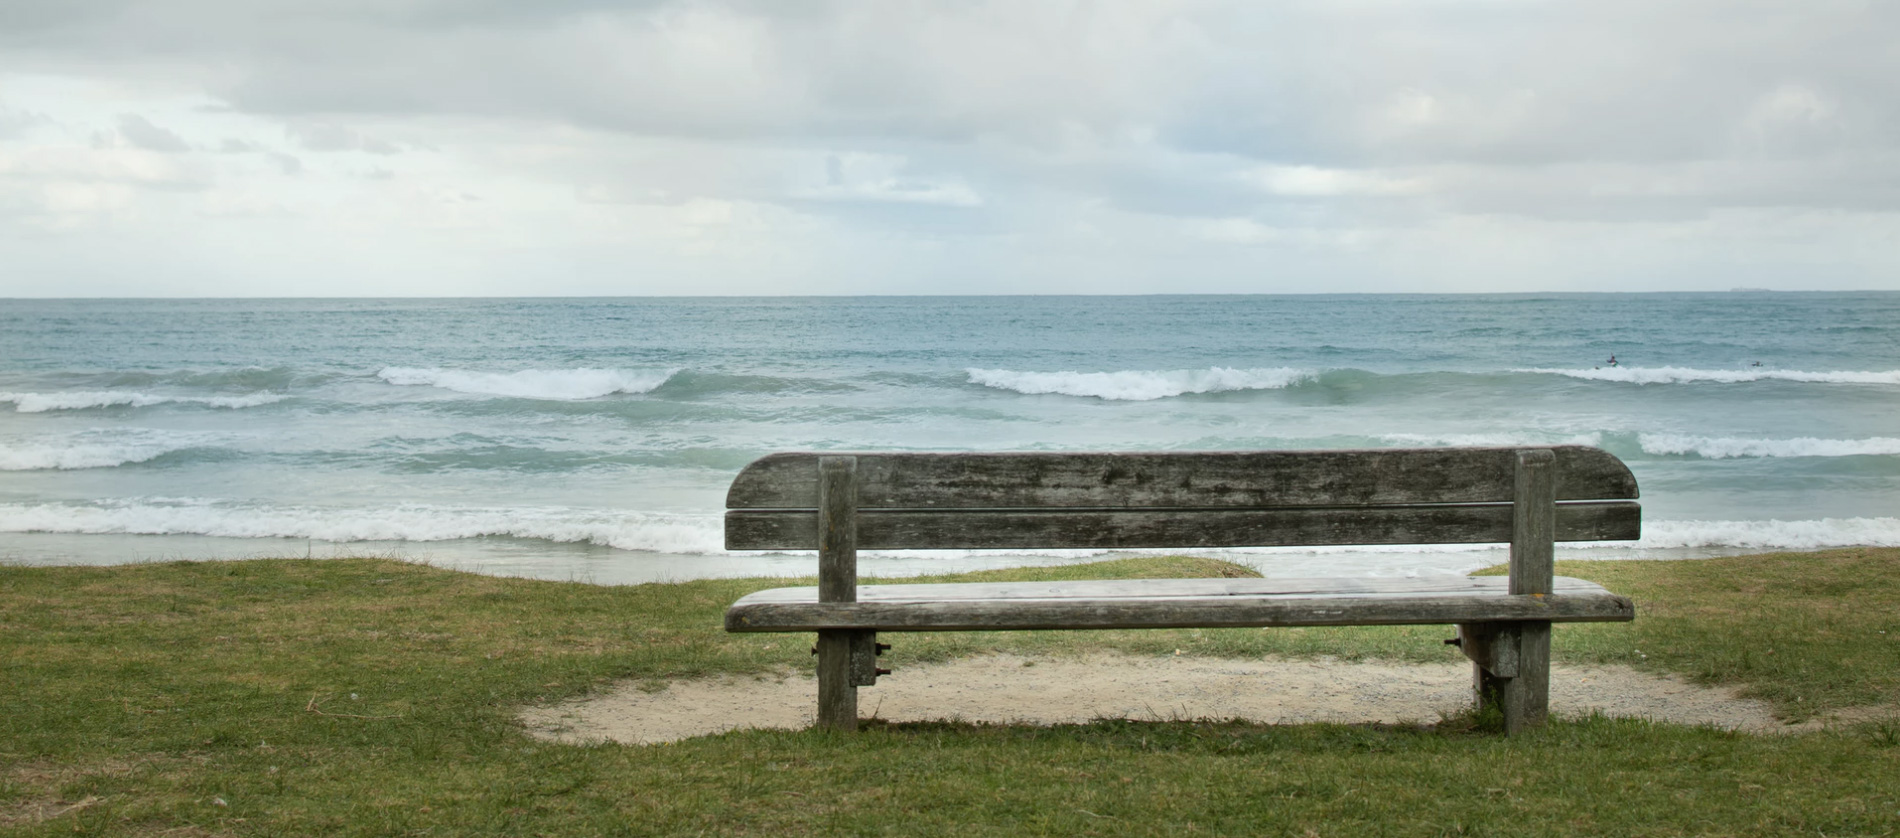 A bench on a seaside